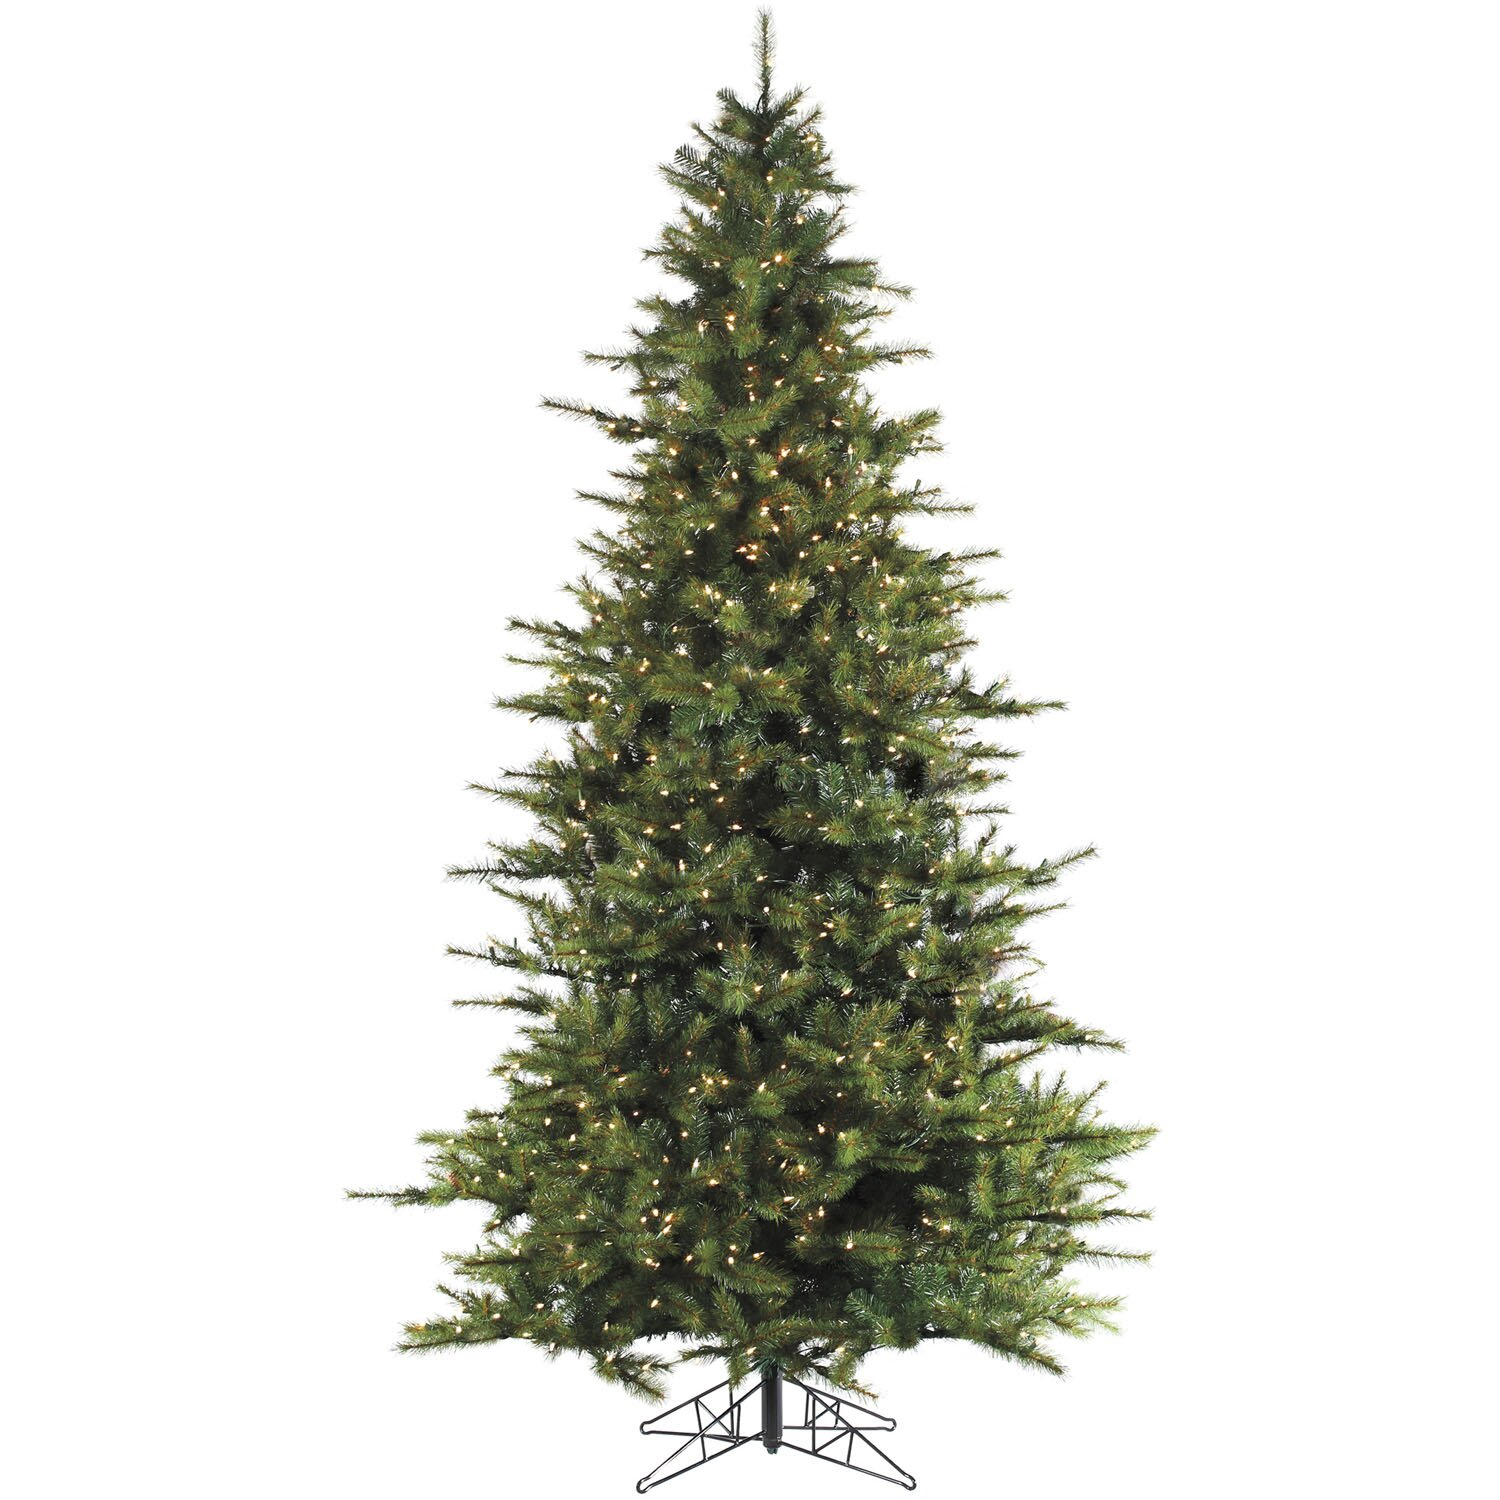 String Lights On Artificial Christmas Tree : Fraser Hill Farm Southern Peace Pine 7.5 Green Artificial Christmas Tree with 600 Smart String ...